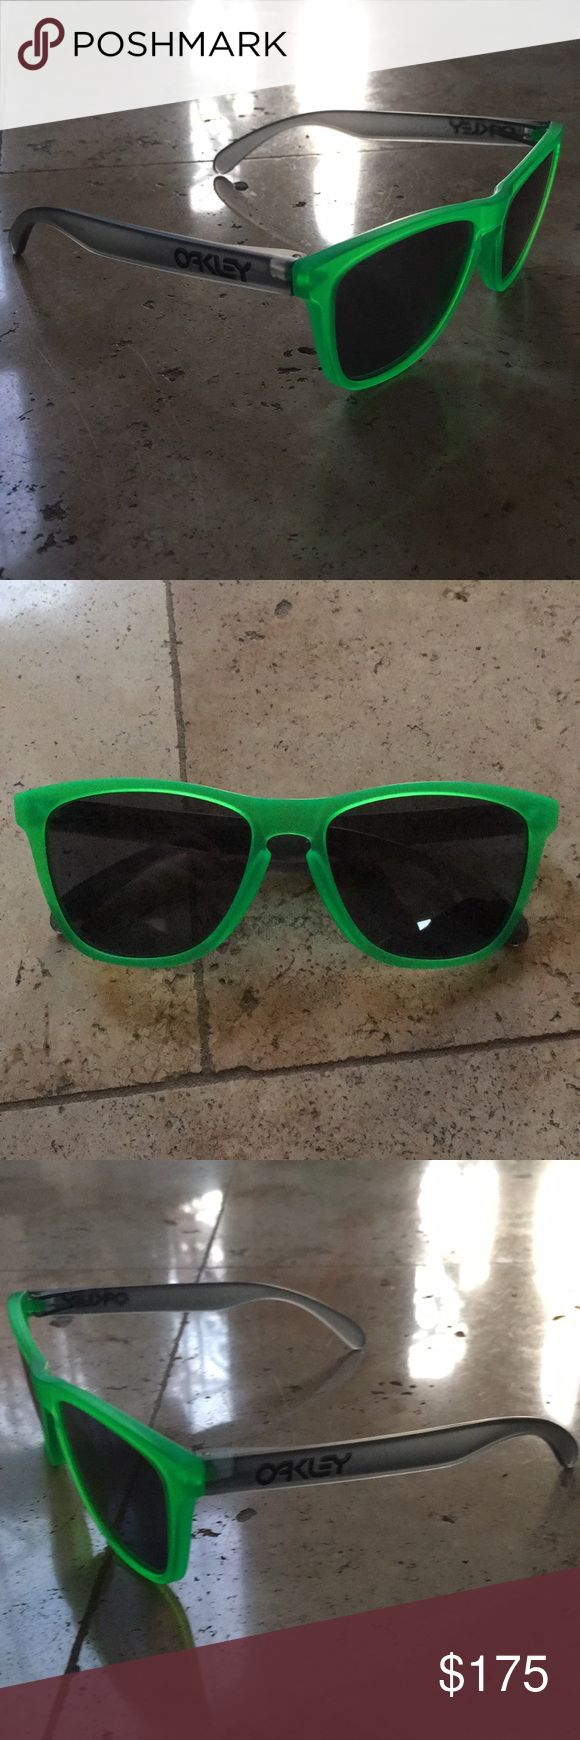 Limited edition Oakley Frogskins Smoke/Neon Green Brand New Limited Edition Oakley Frogskins Smoke/Neon Green. Made in the USA 24-286 55O17 133 Oakley Accessories Sunglasses